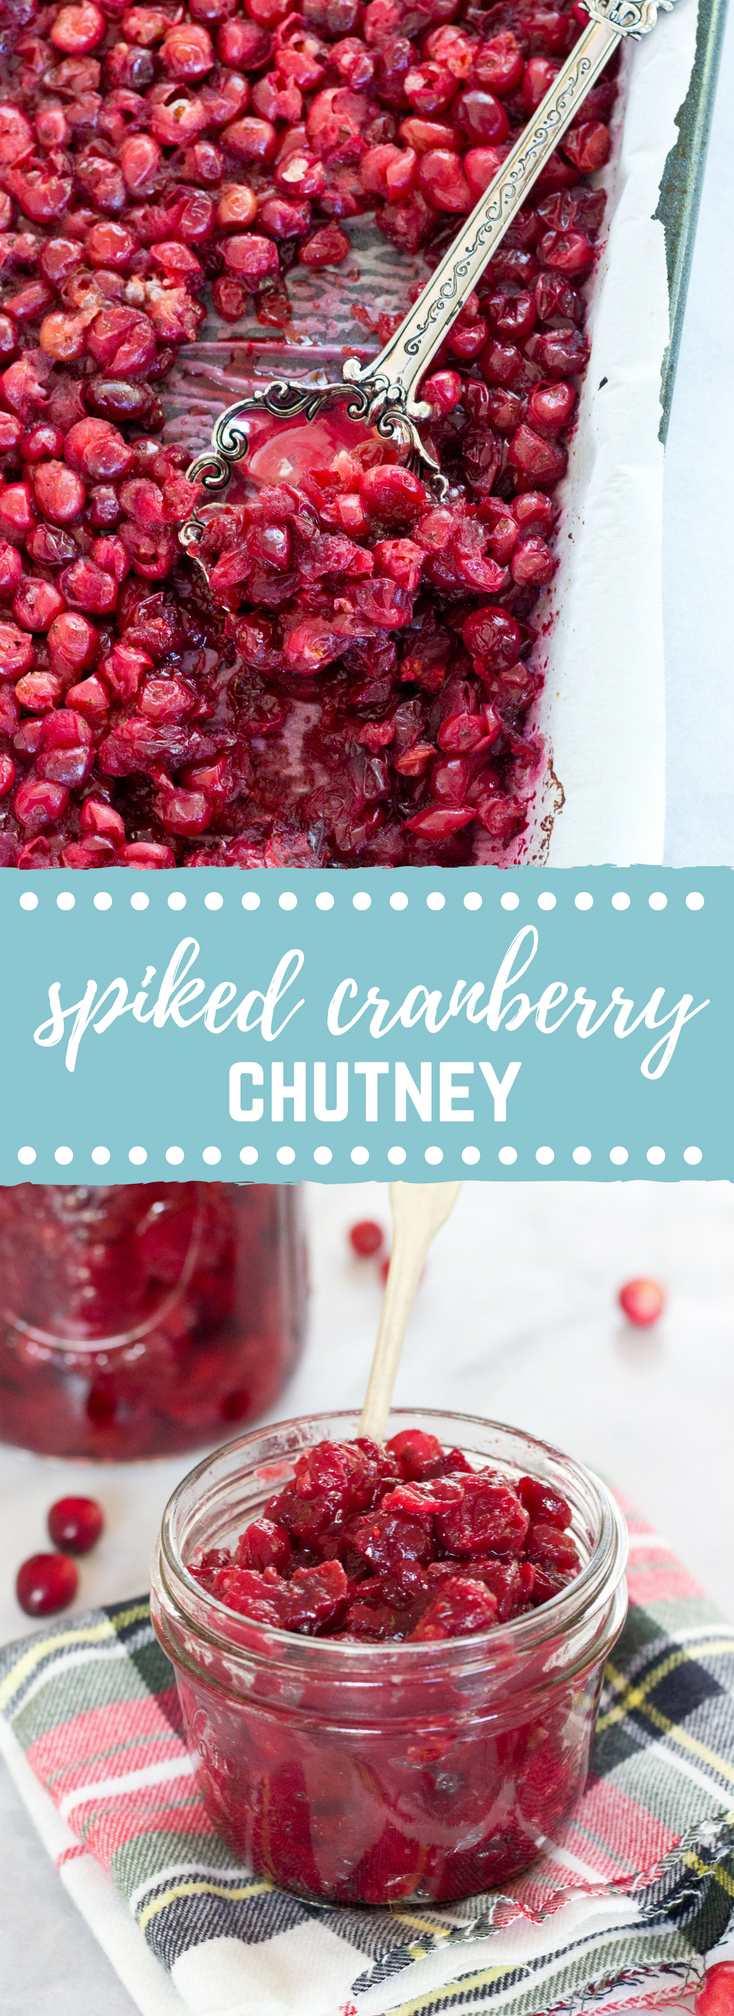 This Spiked Cranberry Chutney not only smells amazing while it's cooking, it's so freaking good. Fresh cranberries, cinnamon, cloves and aged rum... the perfect topping for everything holiday!